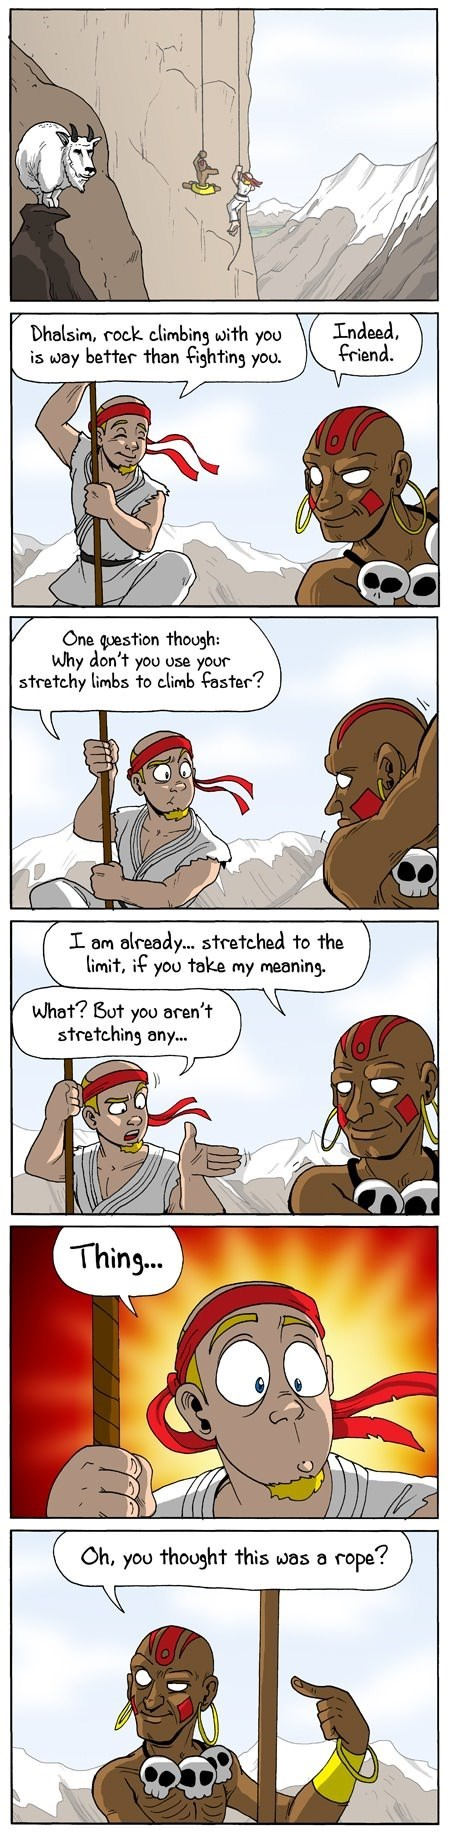 Street fighter,TMI,web comics,dhalsim